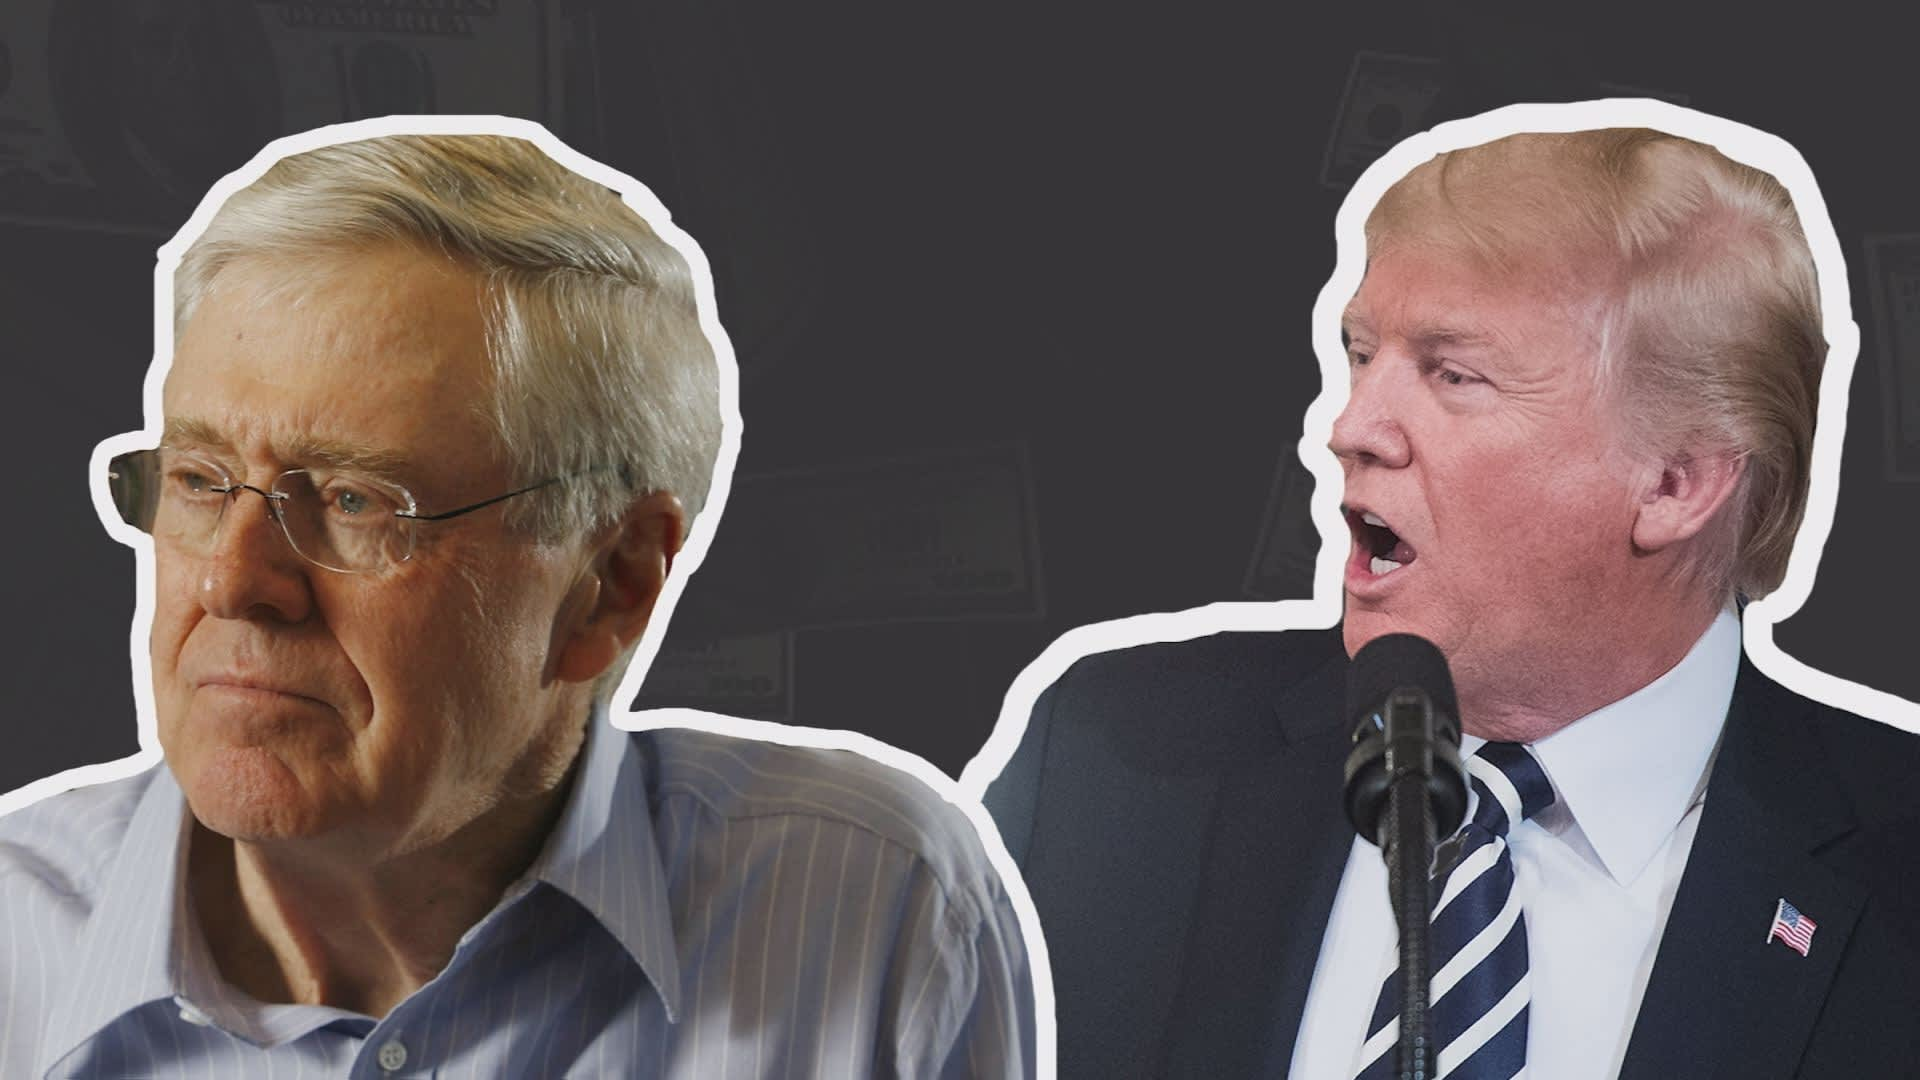 Here's why the Koch brothers are at odds with President Trump